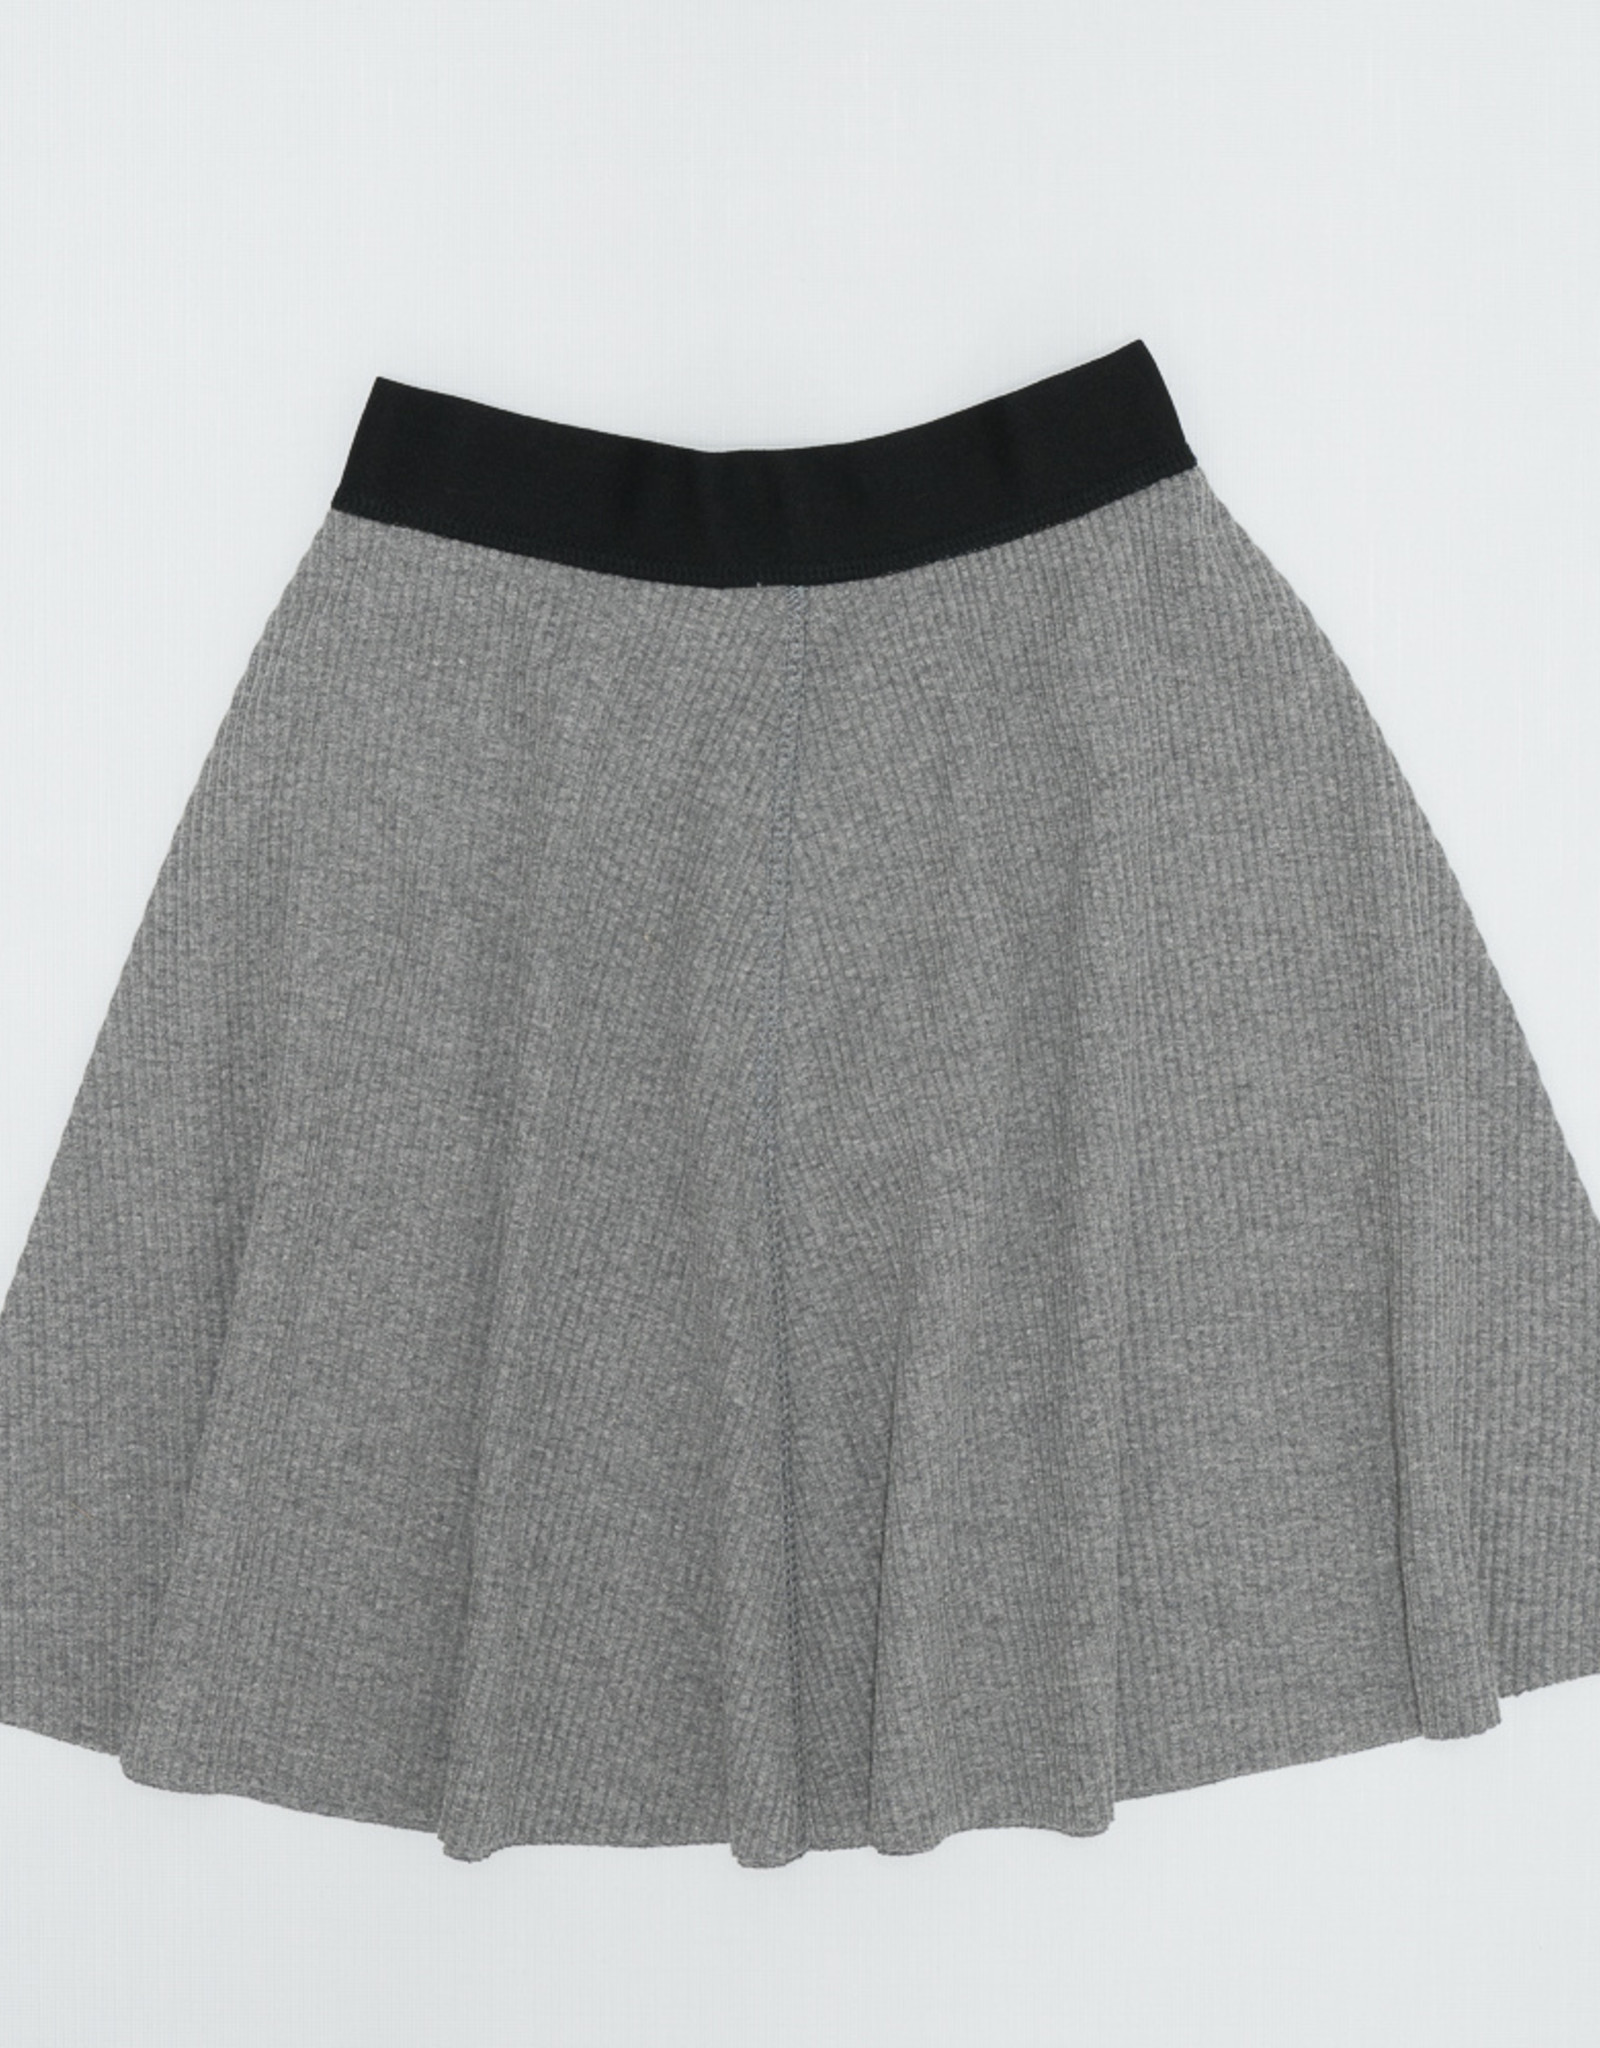 FYI Girls Flare Ribbed Skirt With Elastic Waistband